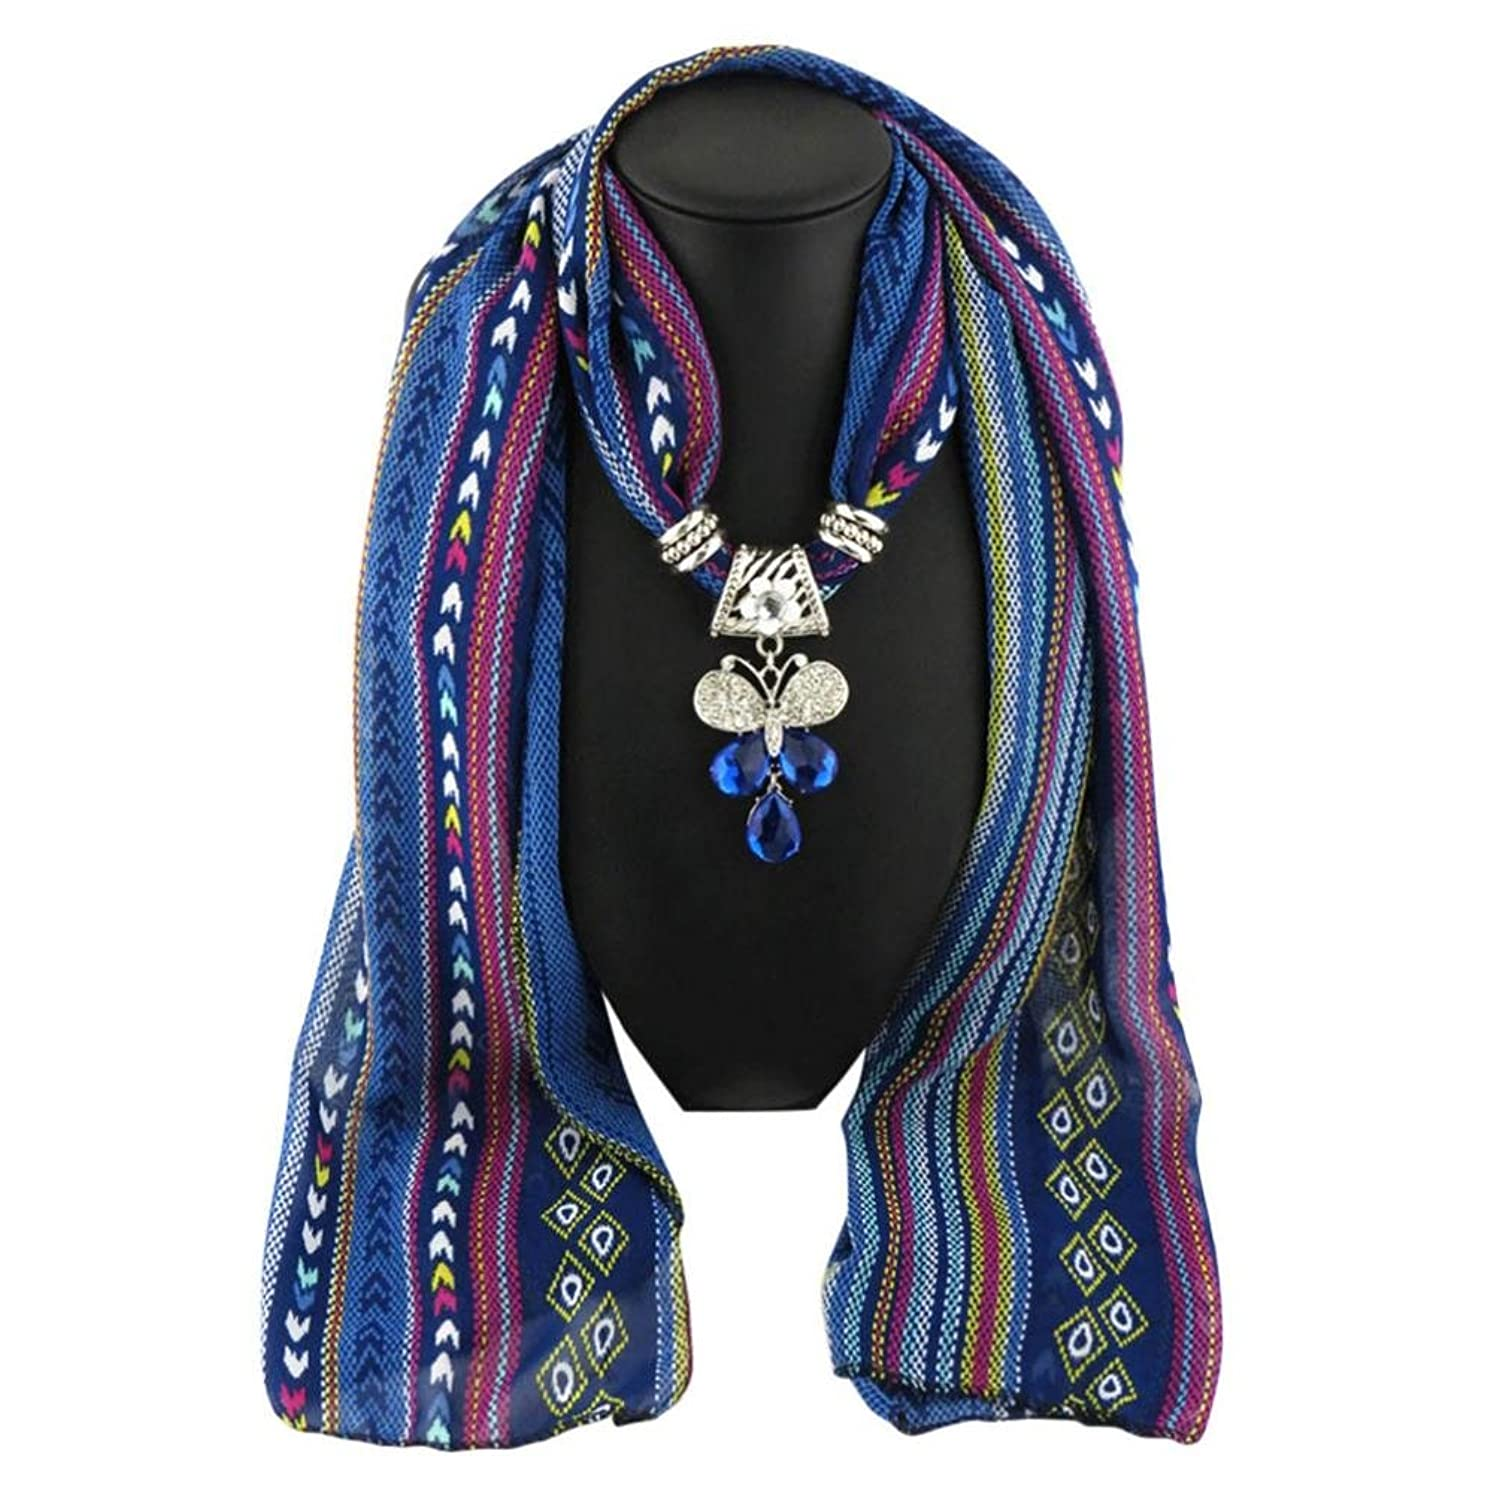 Tiean Women Pendant Scarf With Tassel Rhinestone Jewelry Scarves